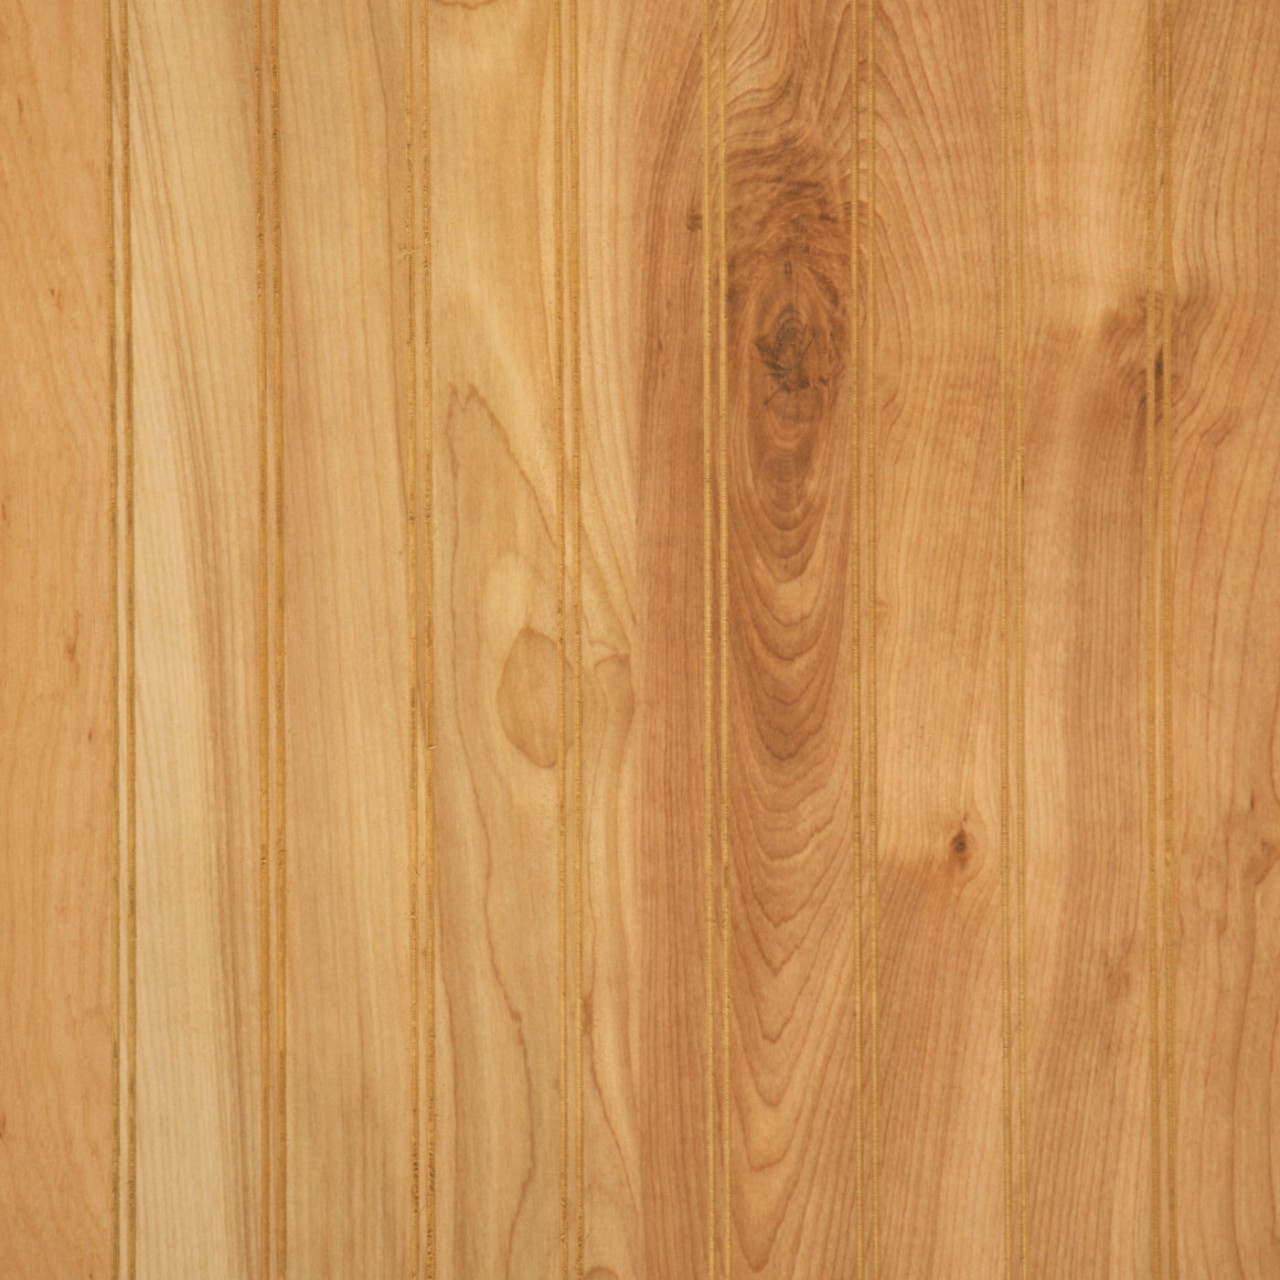 Natural Birch Beadboard Paneling Woodgrain Finish Panels